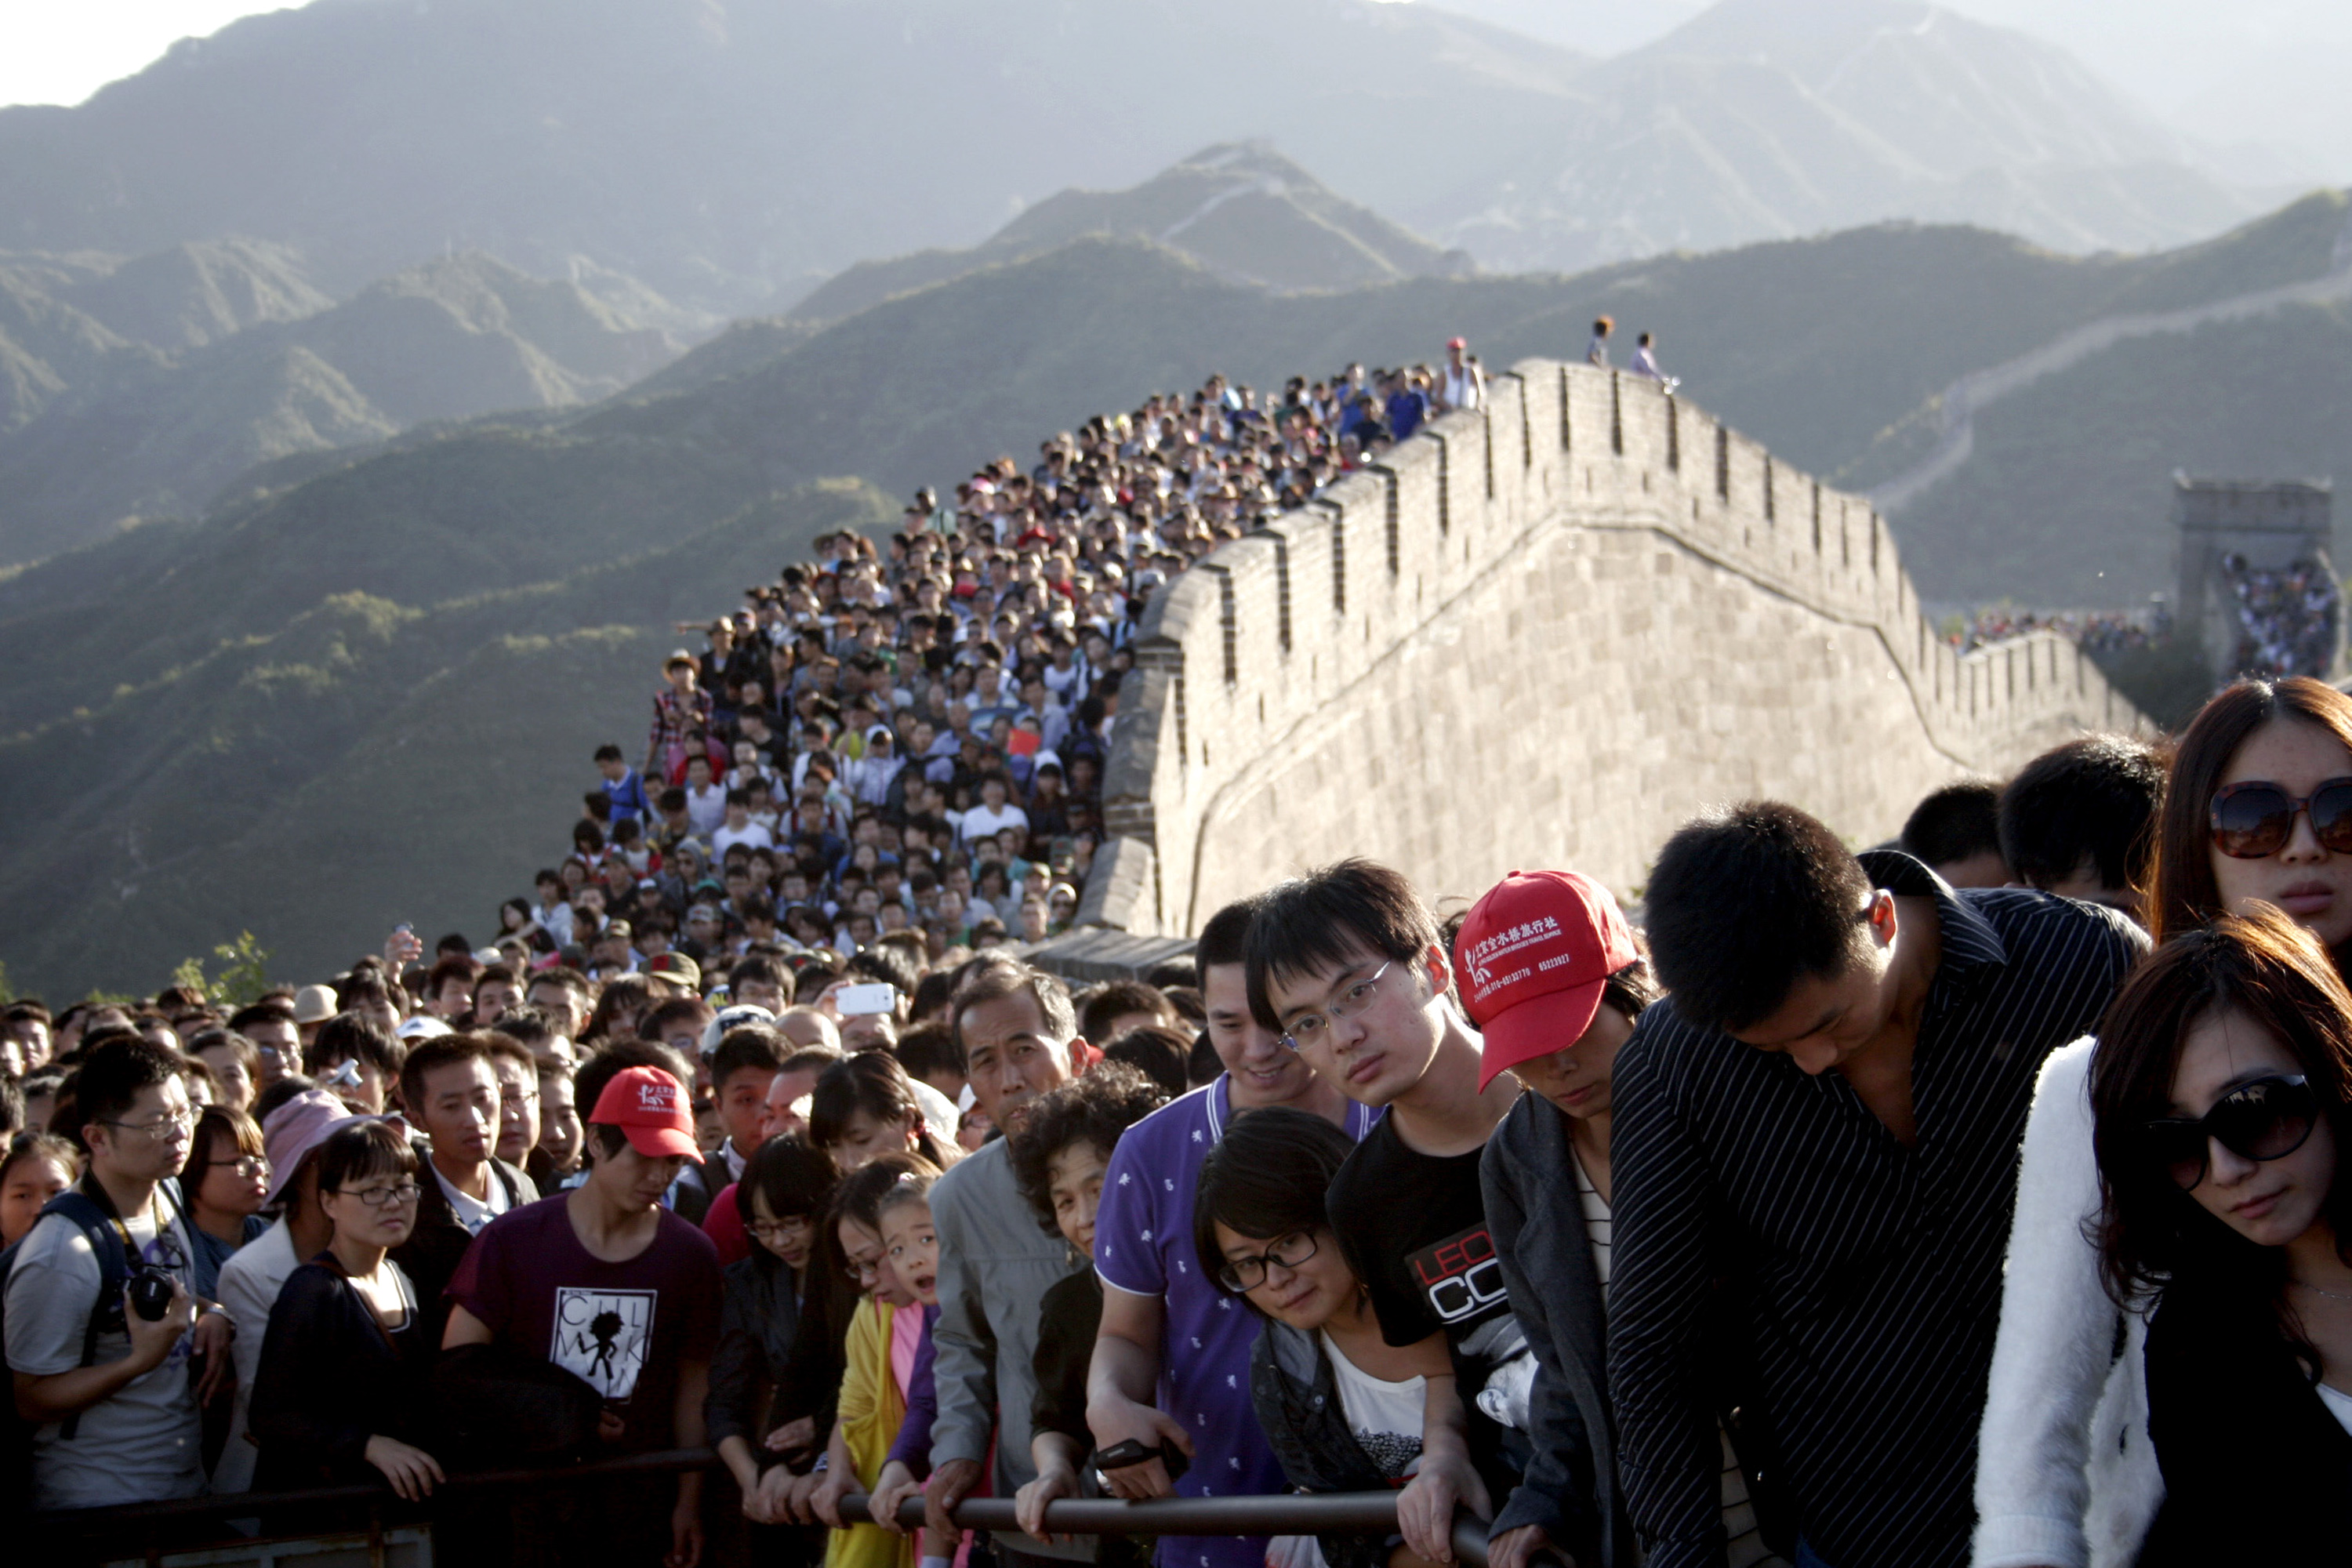 The great firewall: China's digital margins